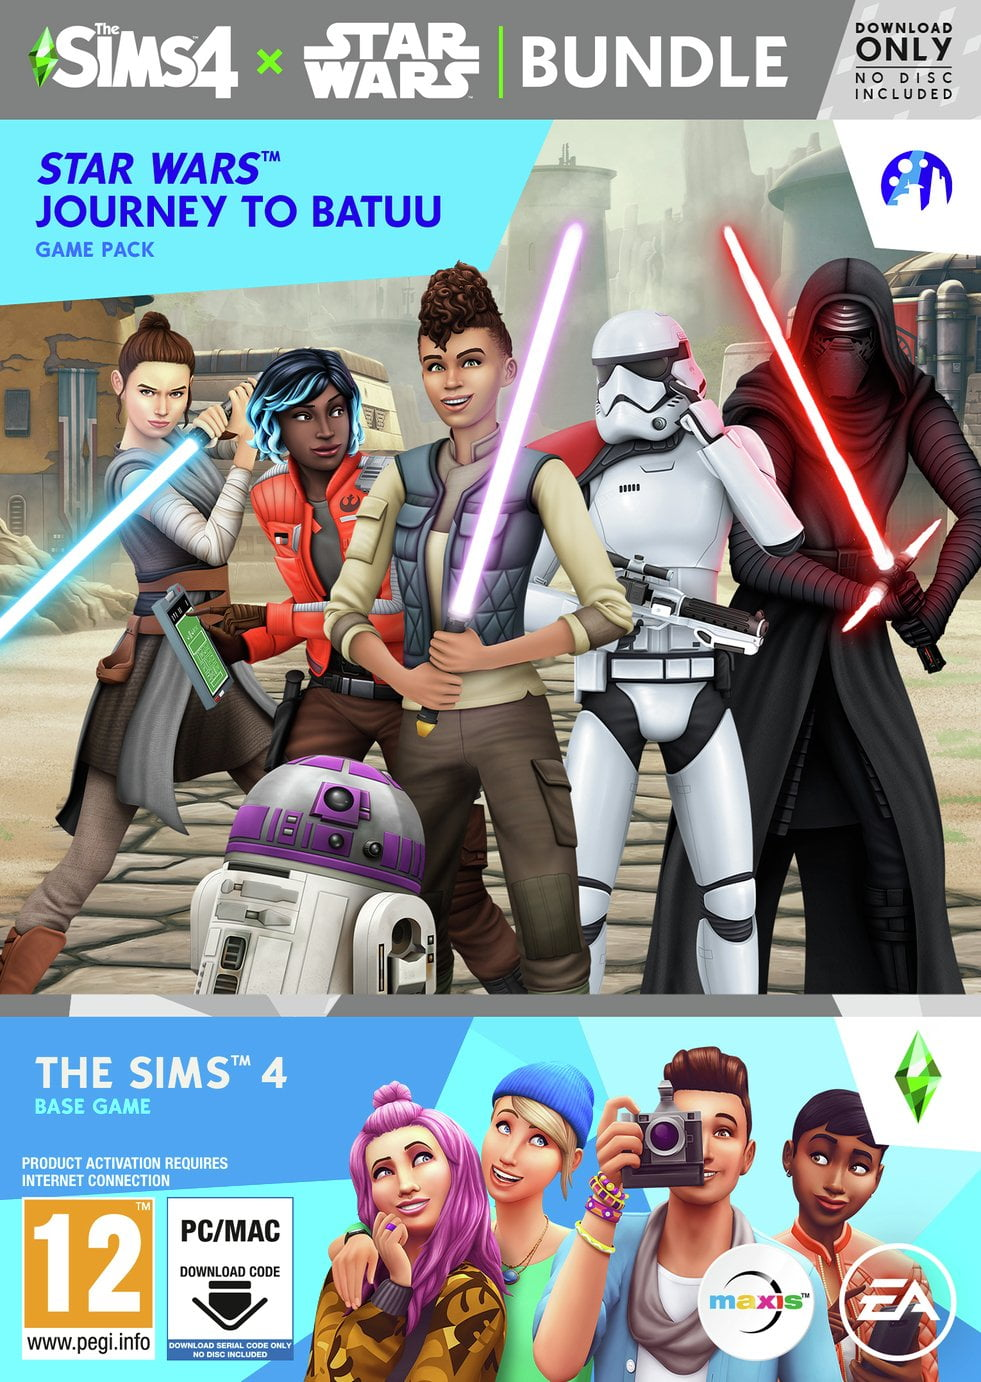 The Sims 4 Star Wars Bundle PC Game